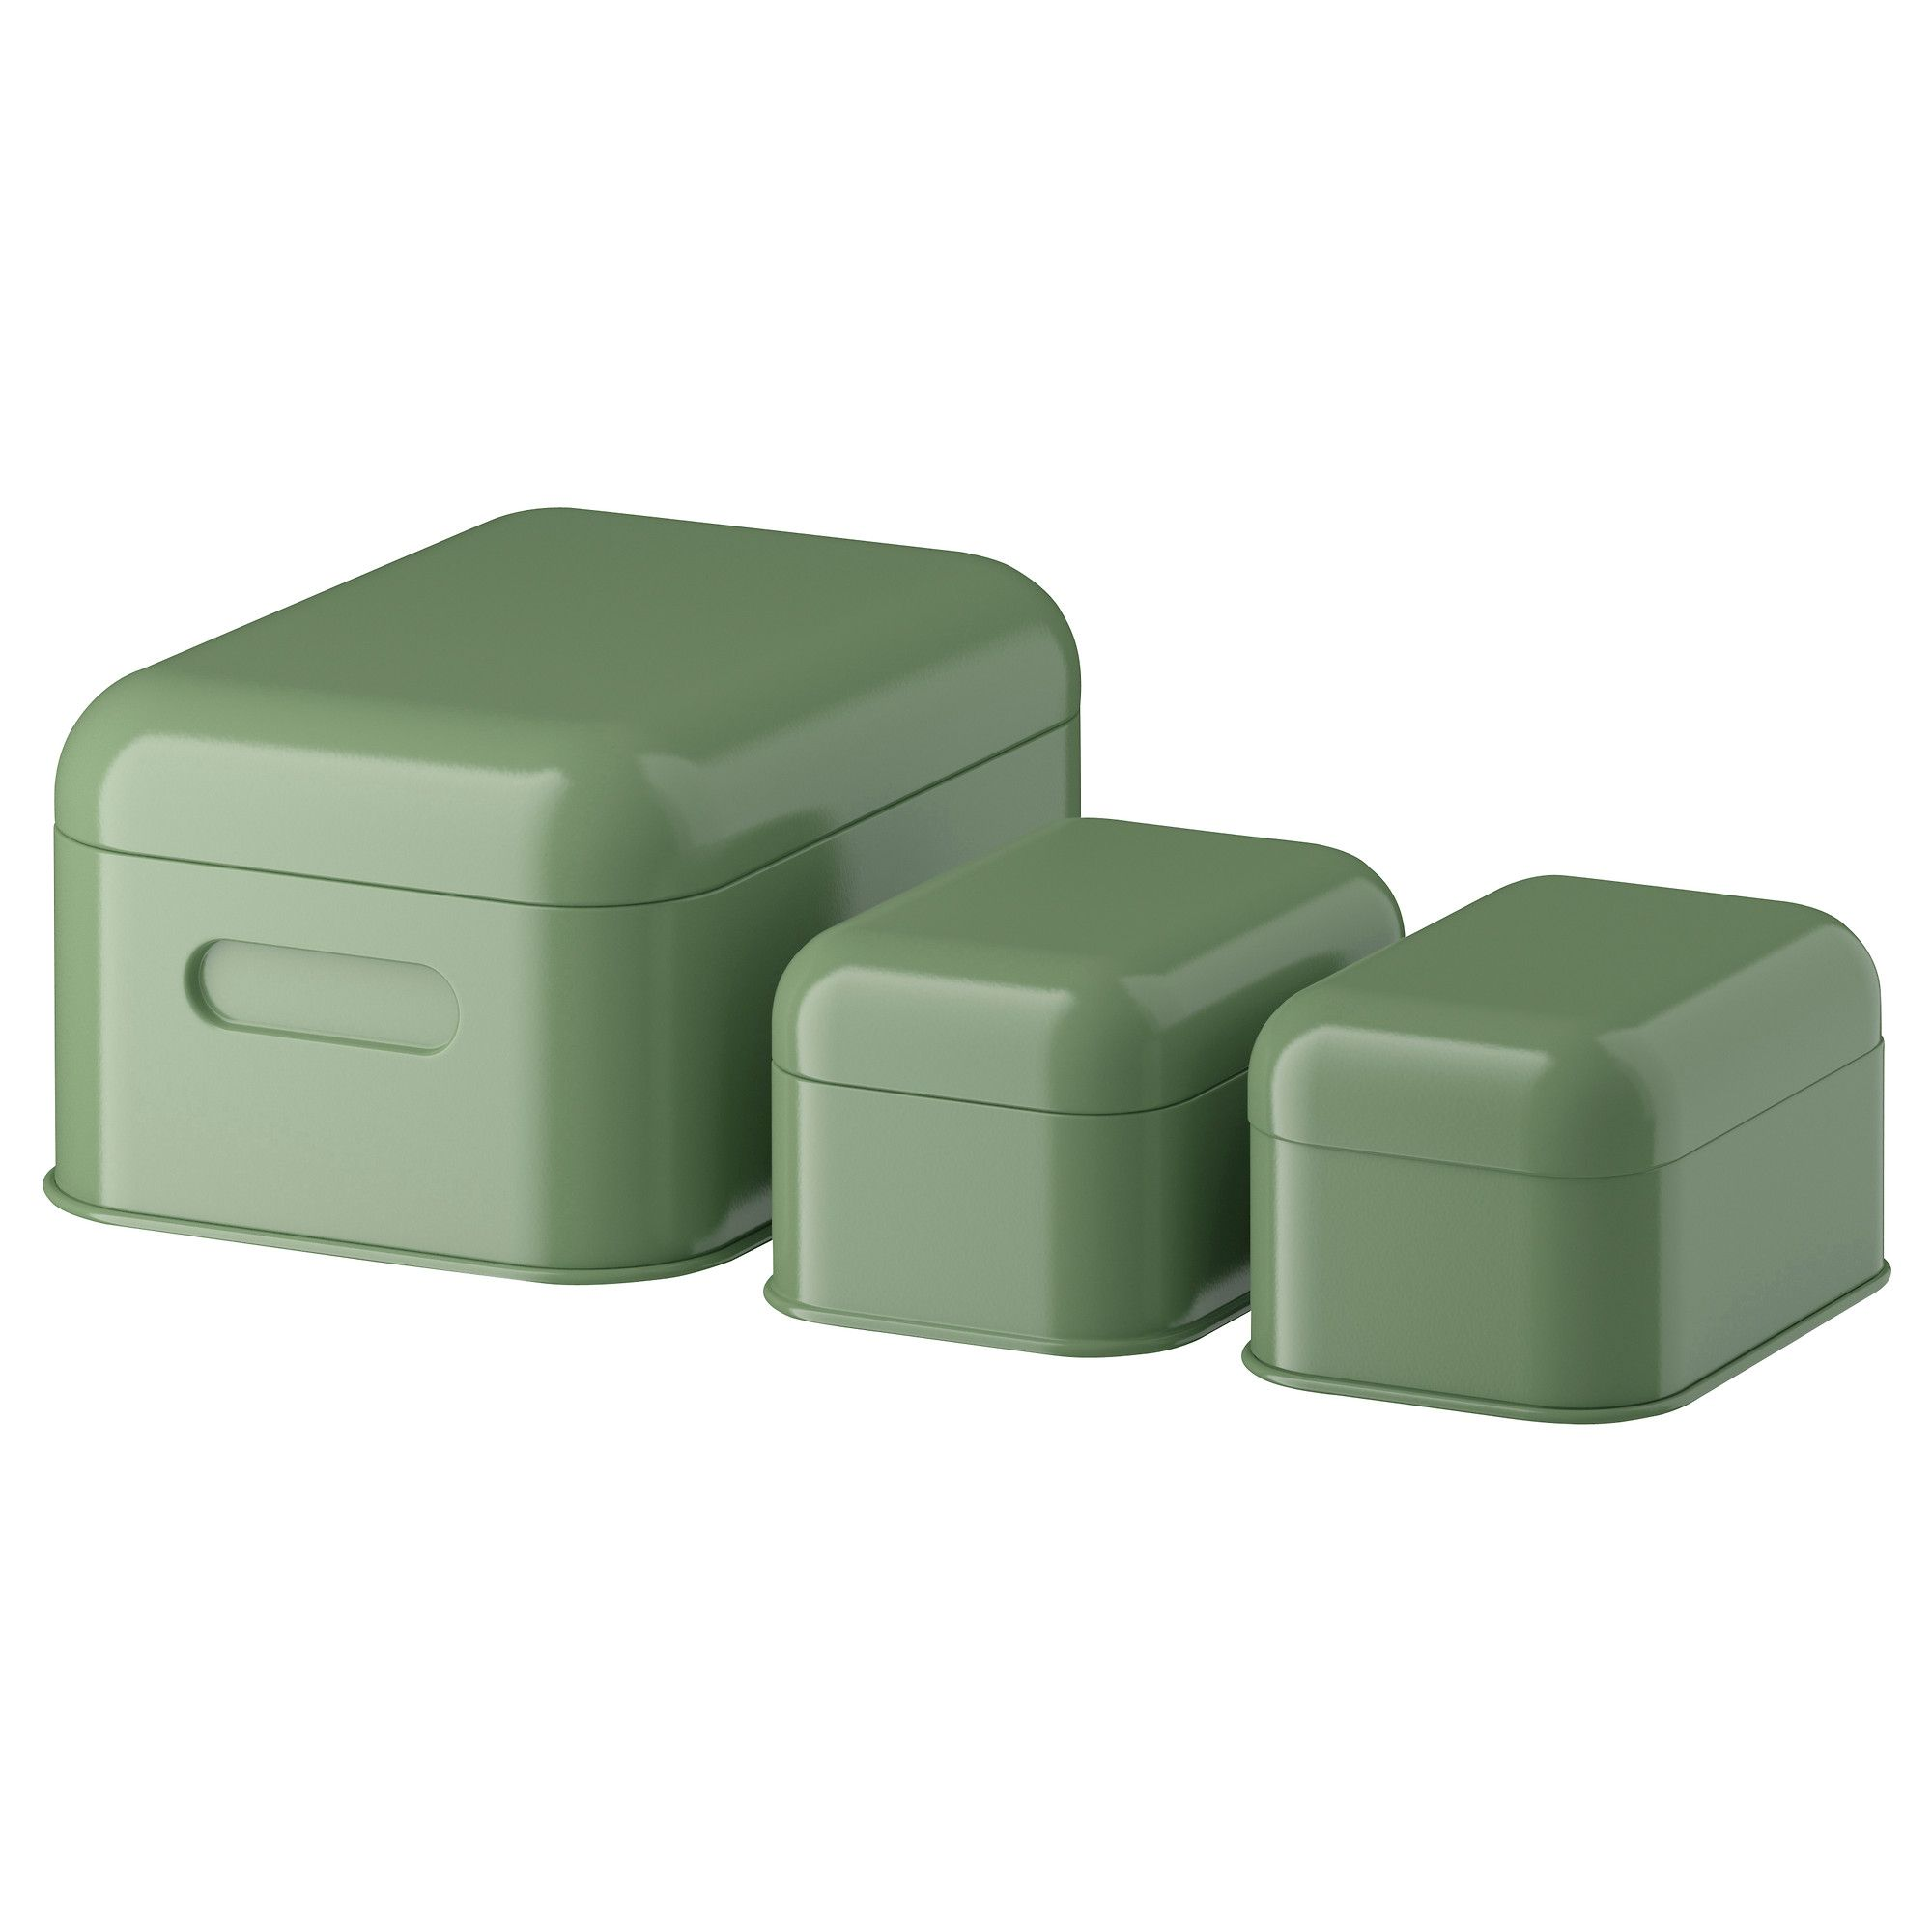 Attrayant SNIKA Box With Lid, Set Of 3   Green   IKEA.